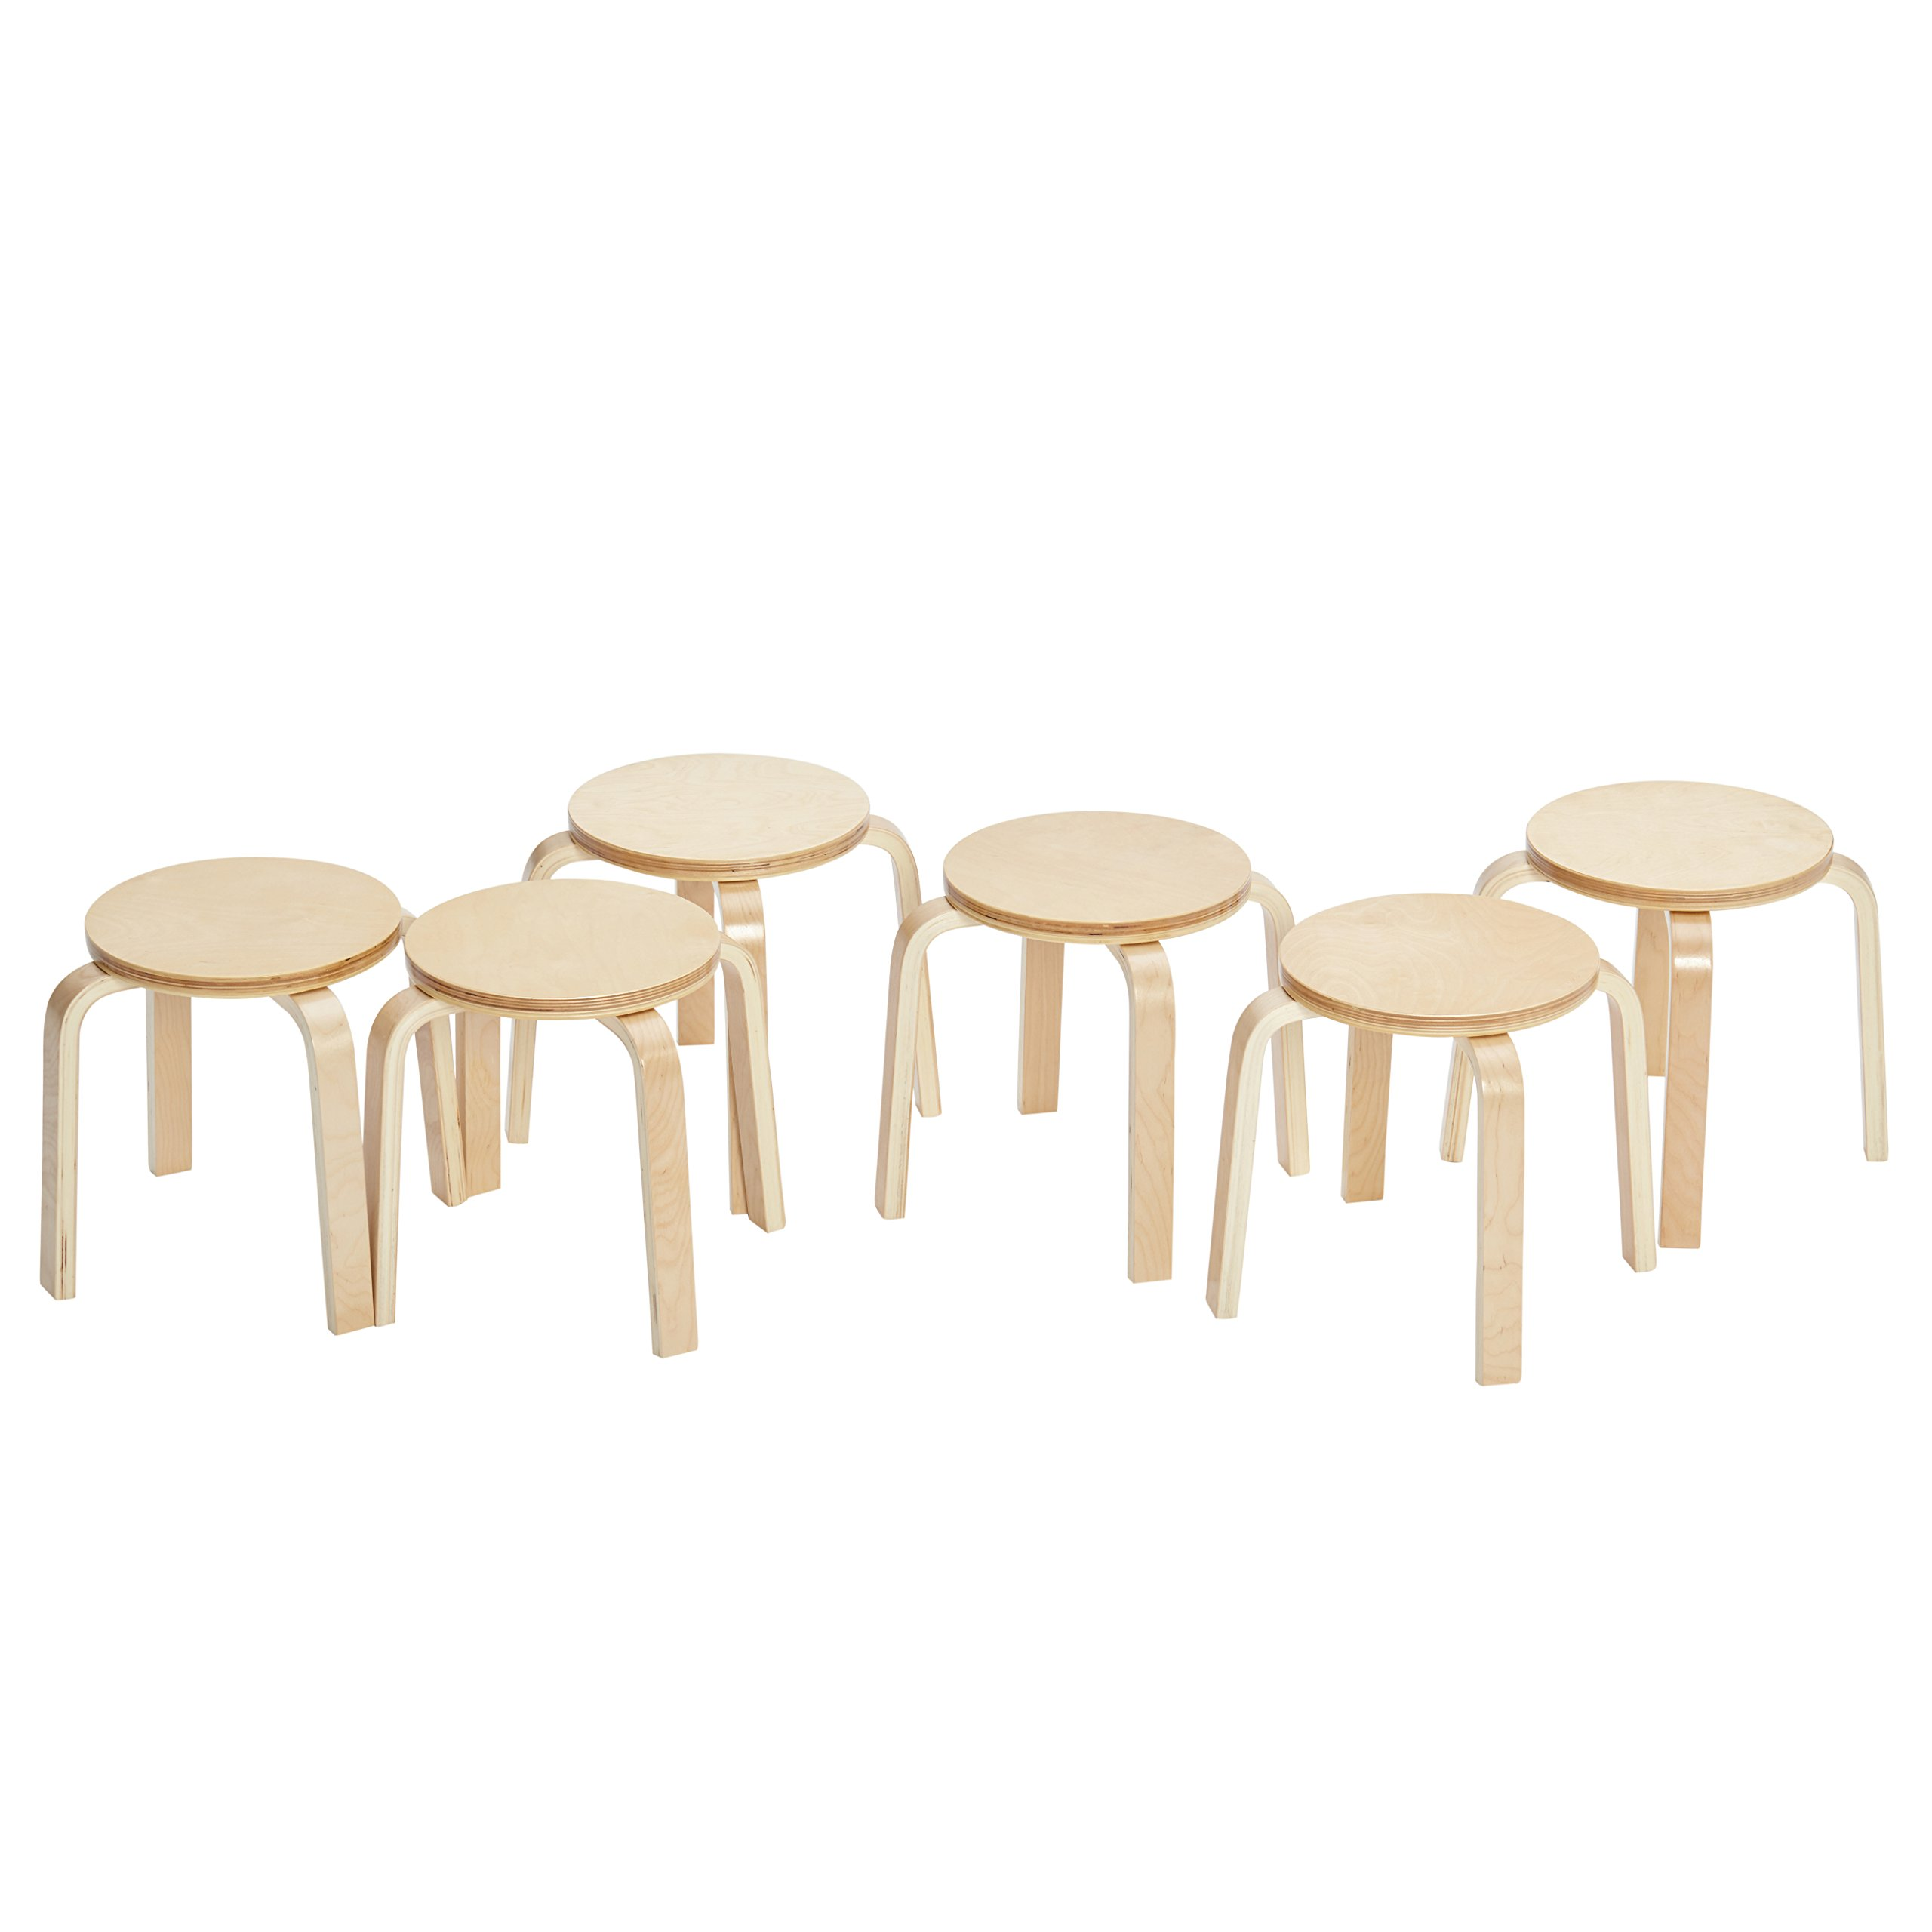 ECR4Kids Bentwood Stacking Stools for Kids, 12'' H, Natural (6-Piece Set)